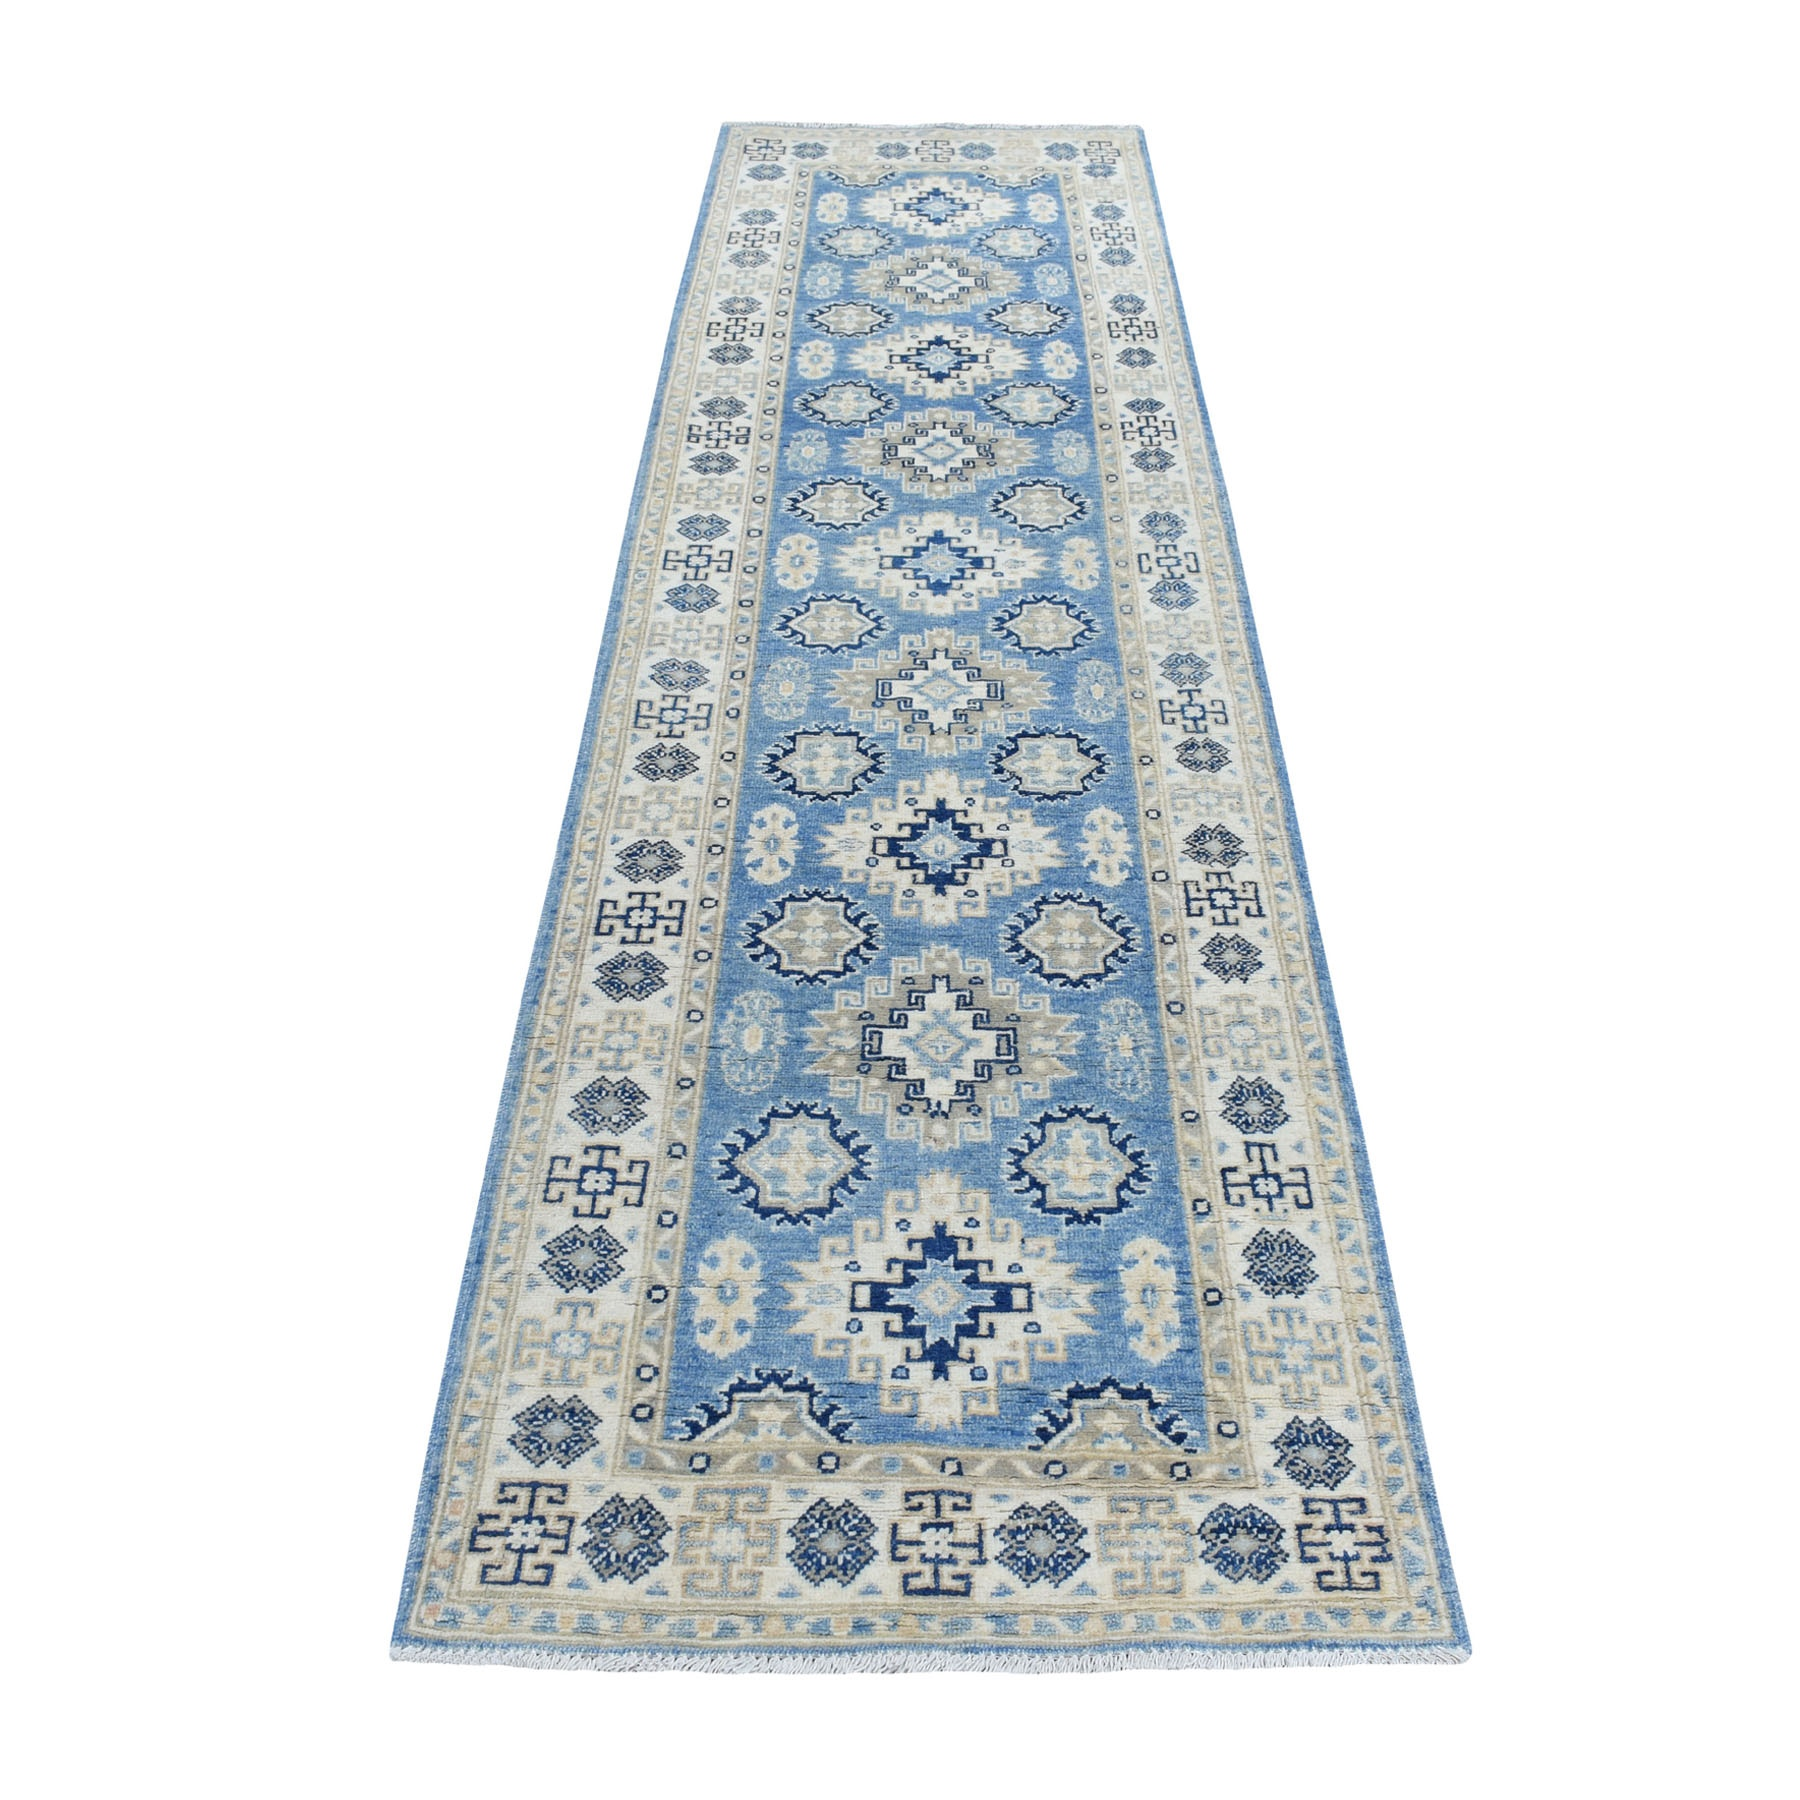 "2'8""x9'6"" Blue All Over Design Hand Knotted Pure Wool Vintage Look Kazak Runner Oriental Rug"